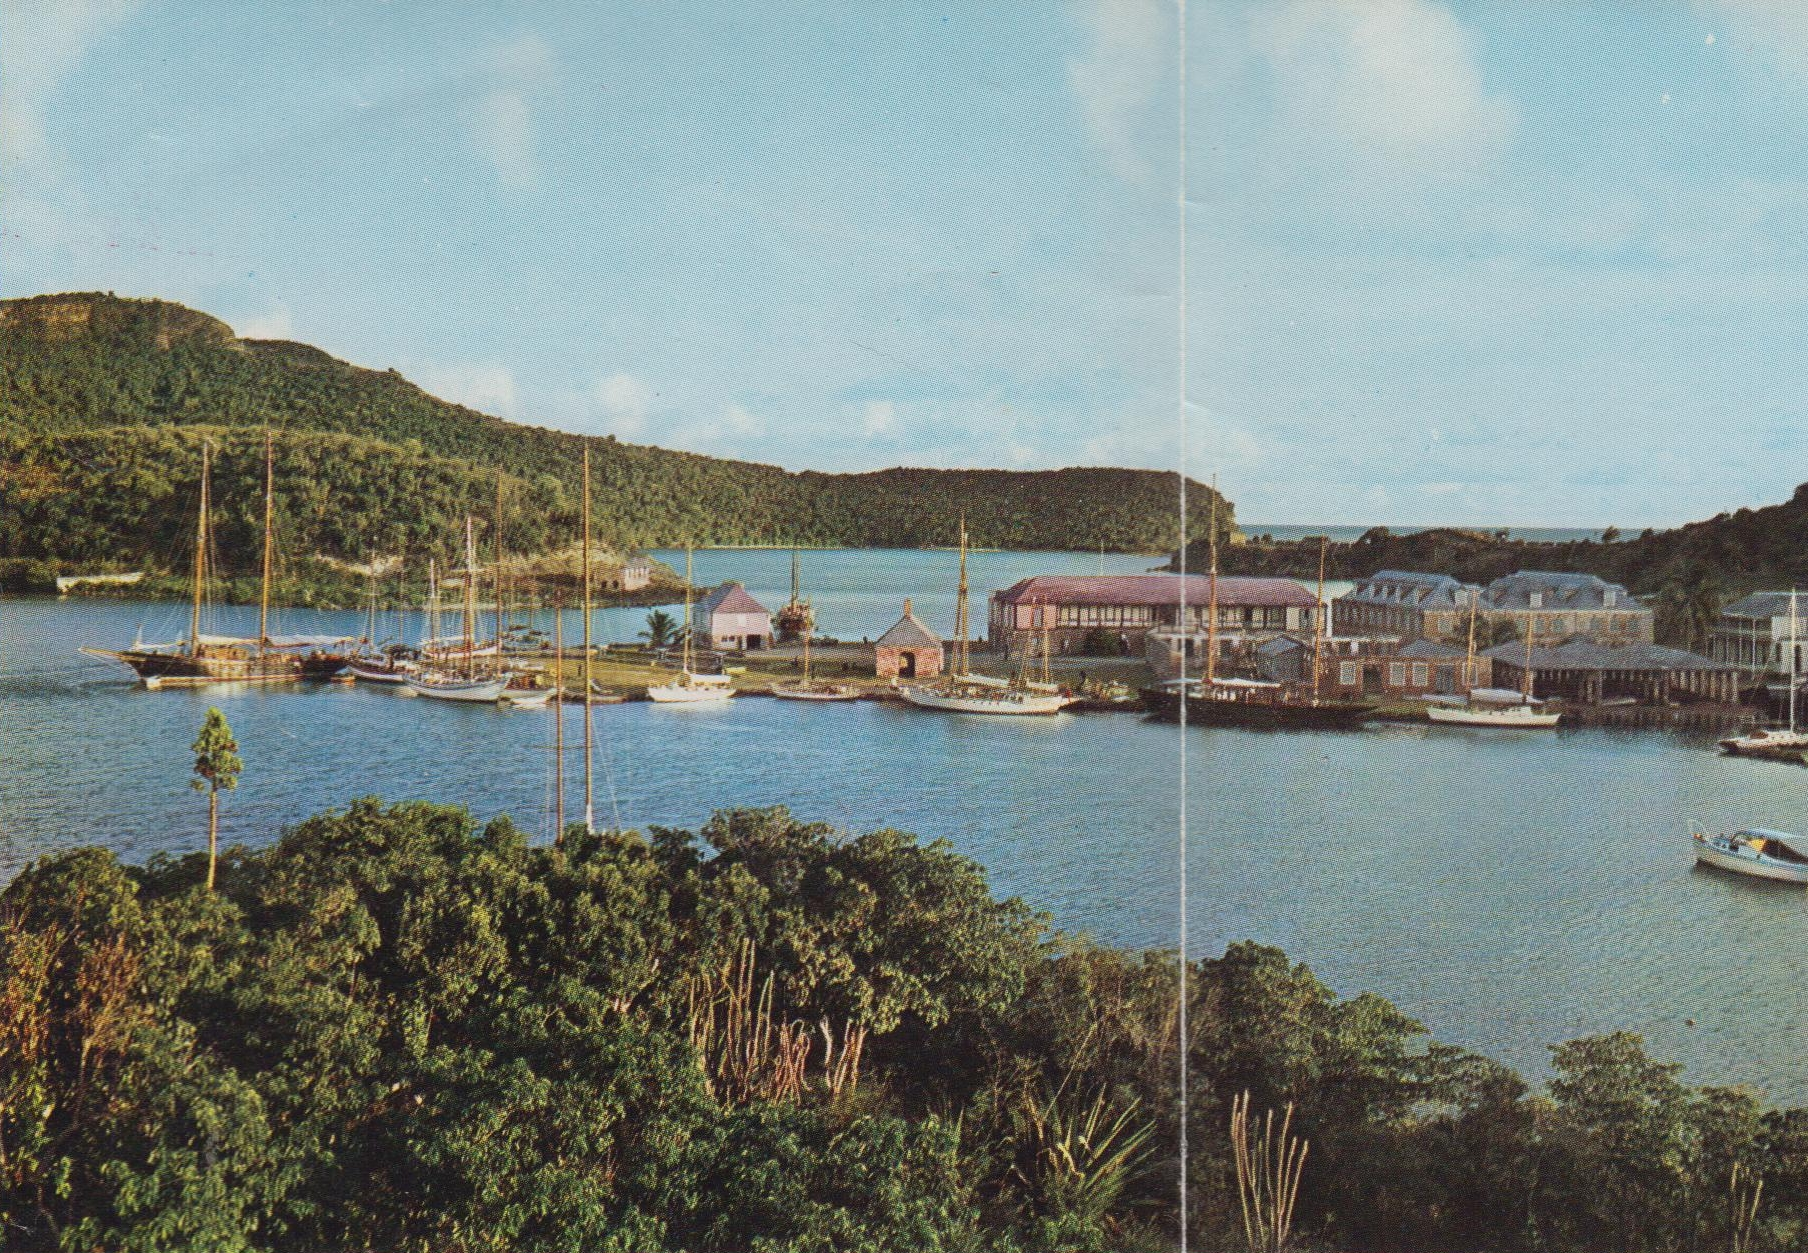 Nelson's Dockyard, English Harbour, Antigua, headquarters for V.E.B. Nicholson & Sons, aka Nicholson Yacht Charters, founded by Vernon E.B. Nicholson in 1949